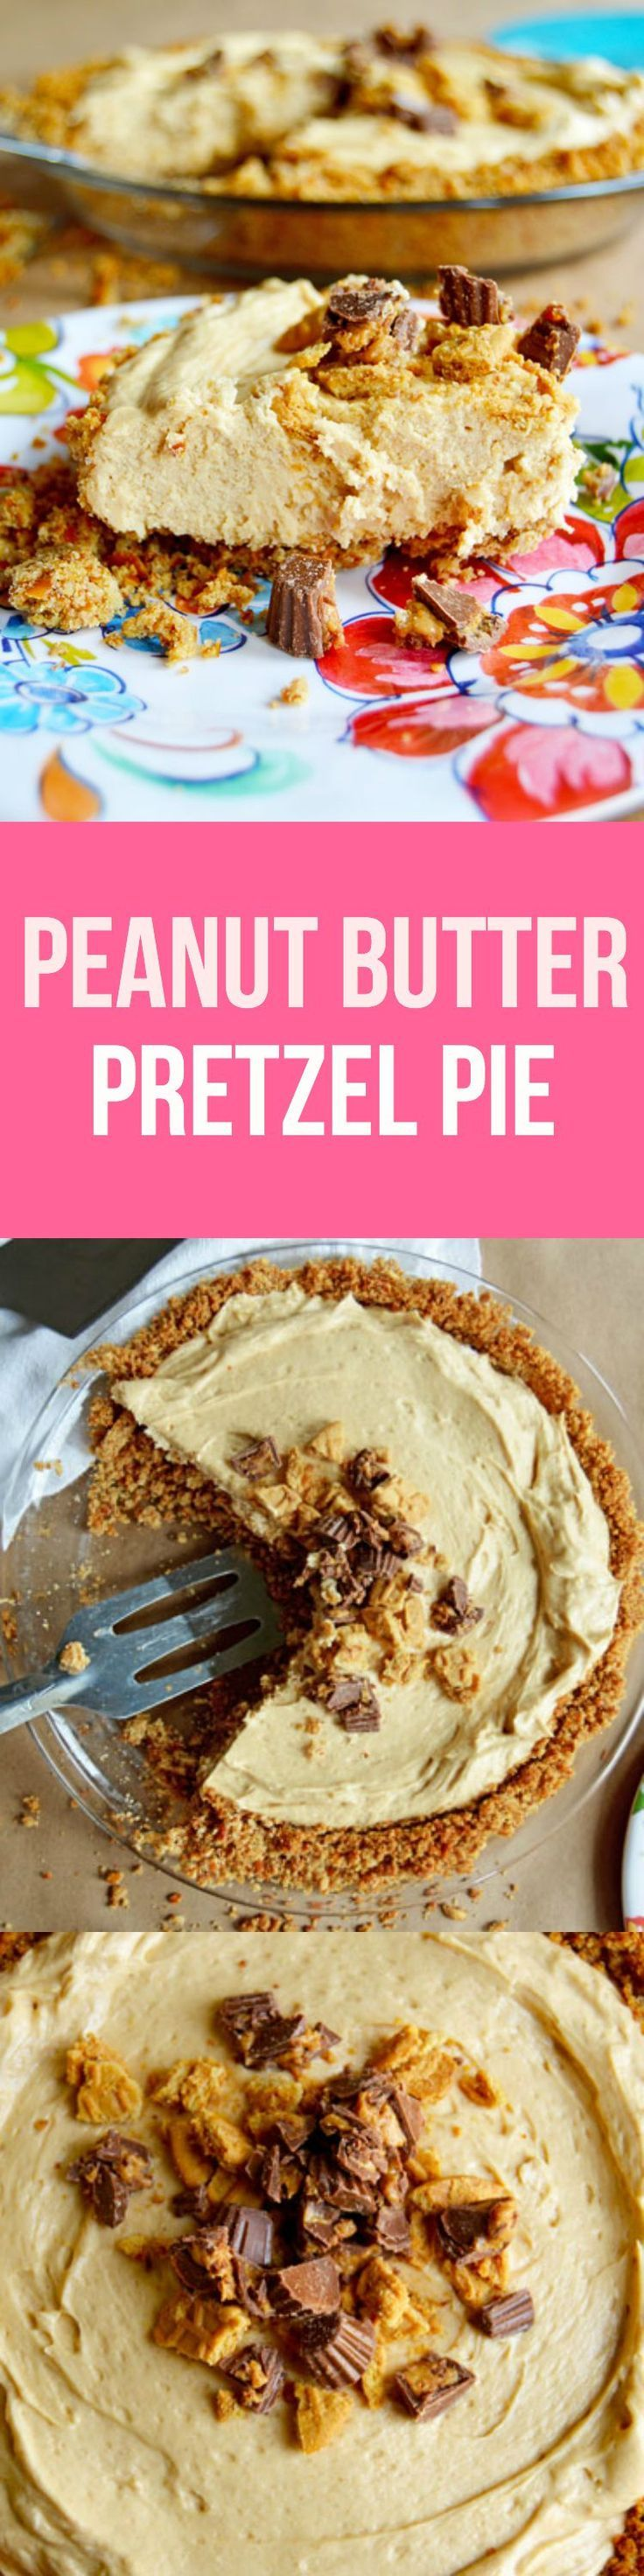 17 Best ideas about Peanut Butter Funny on Pinterest ...